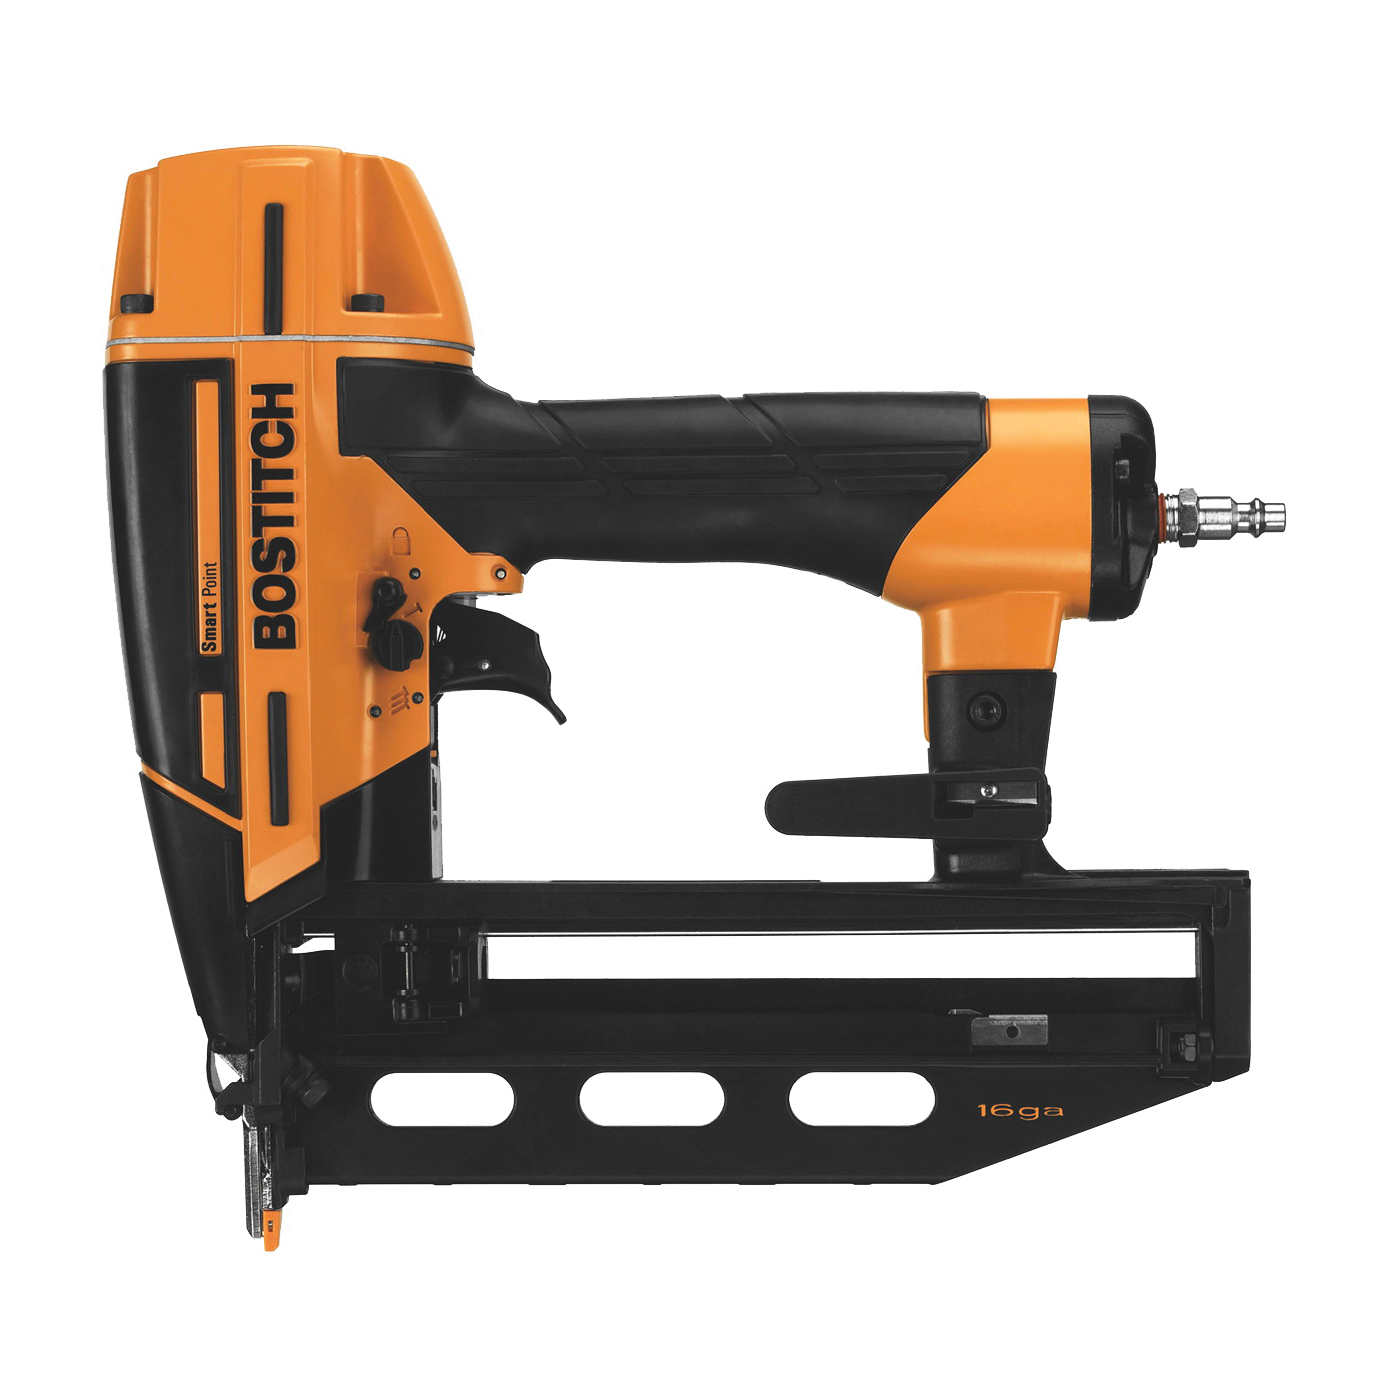 Picture of Bostitch BTFP71917 Finish Nailer Kit, 100 Magazine, Glue Collation, 2-1/2 in Fastener